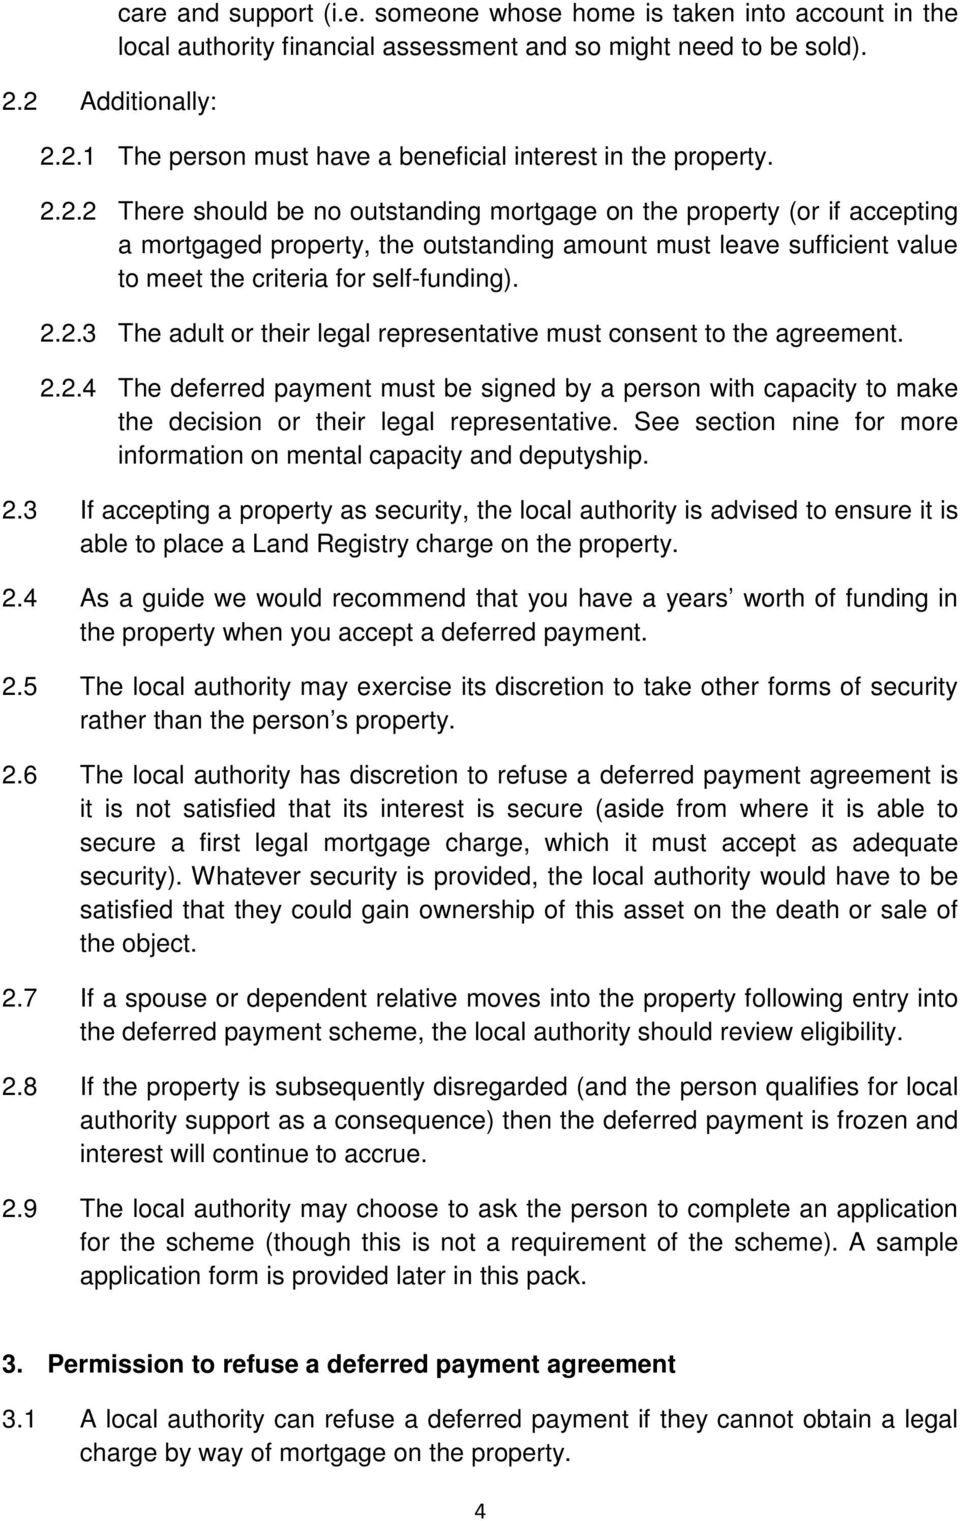 2.2.4 The deferred payment must be signed by a person with capacity to make the decision or their legal representative. See section nine for more information on mental capacity and deputyship. 2.